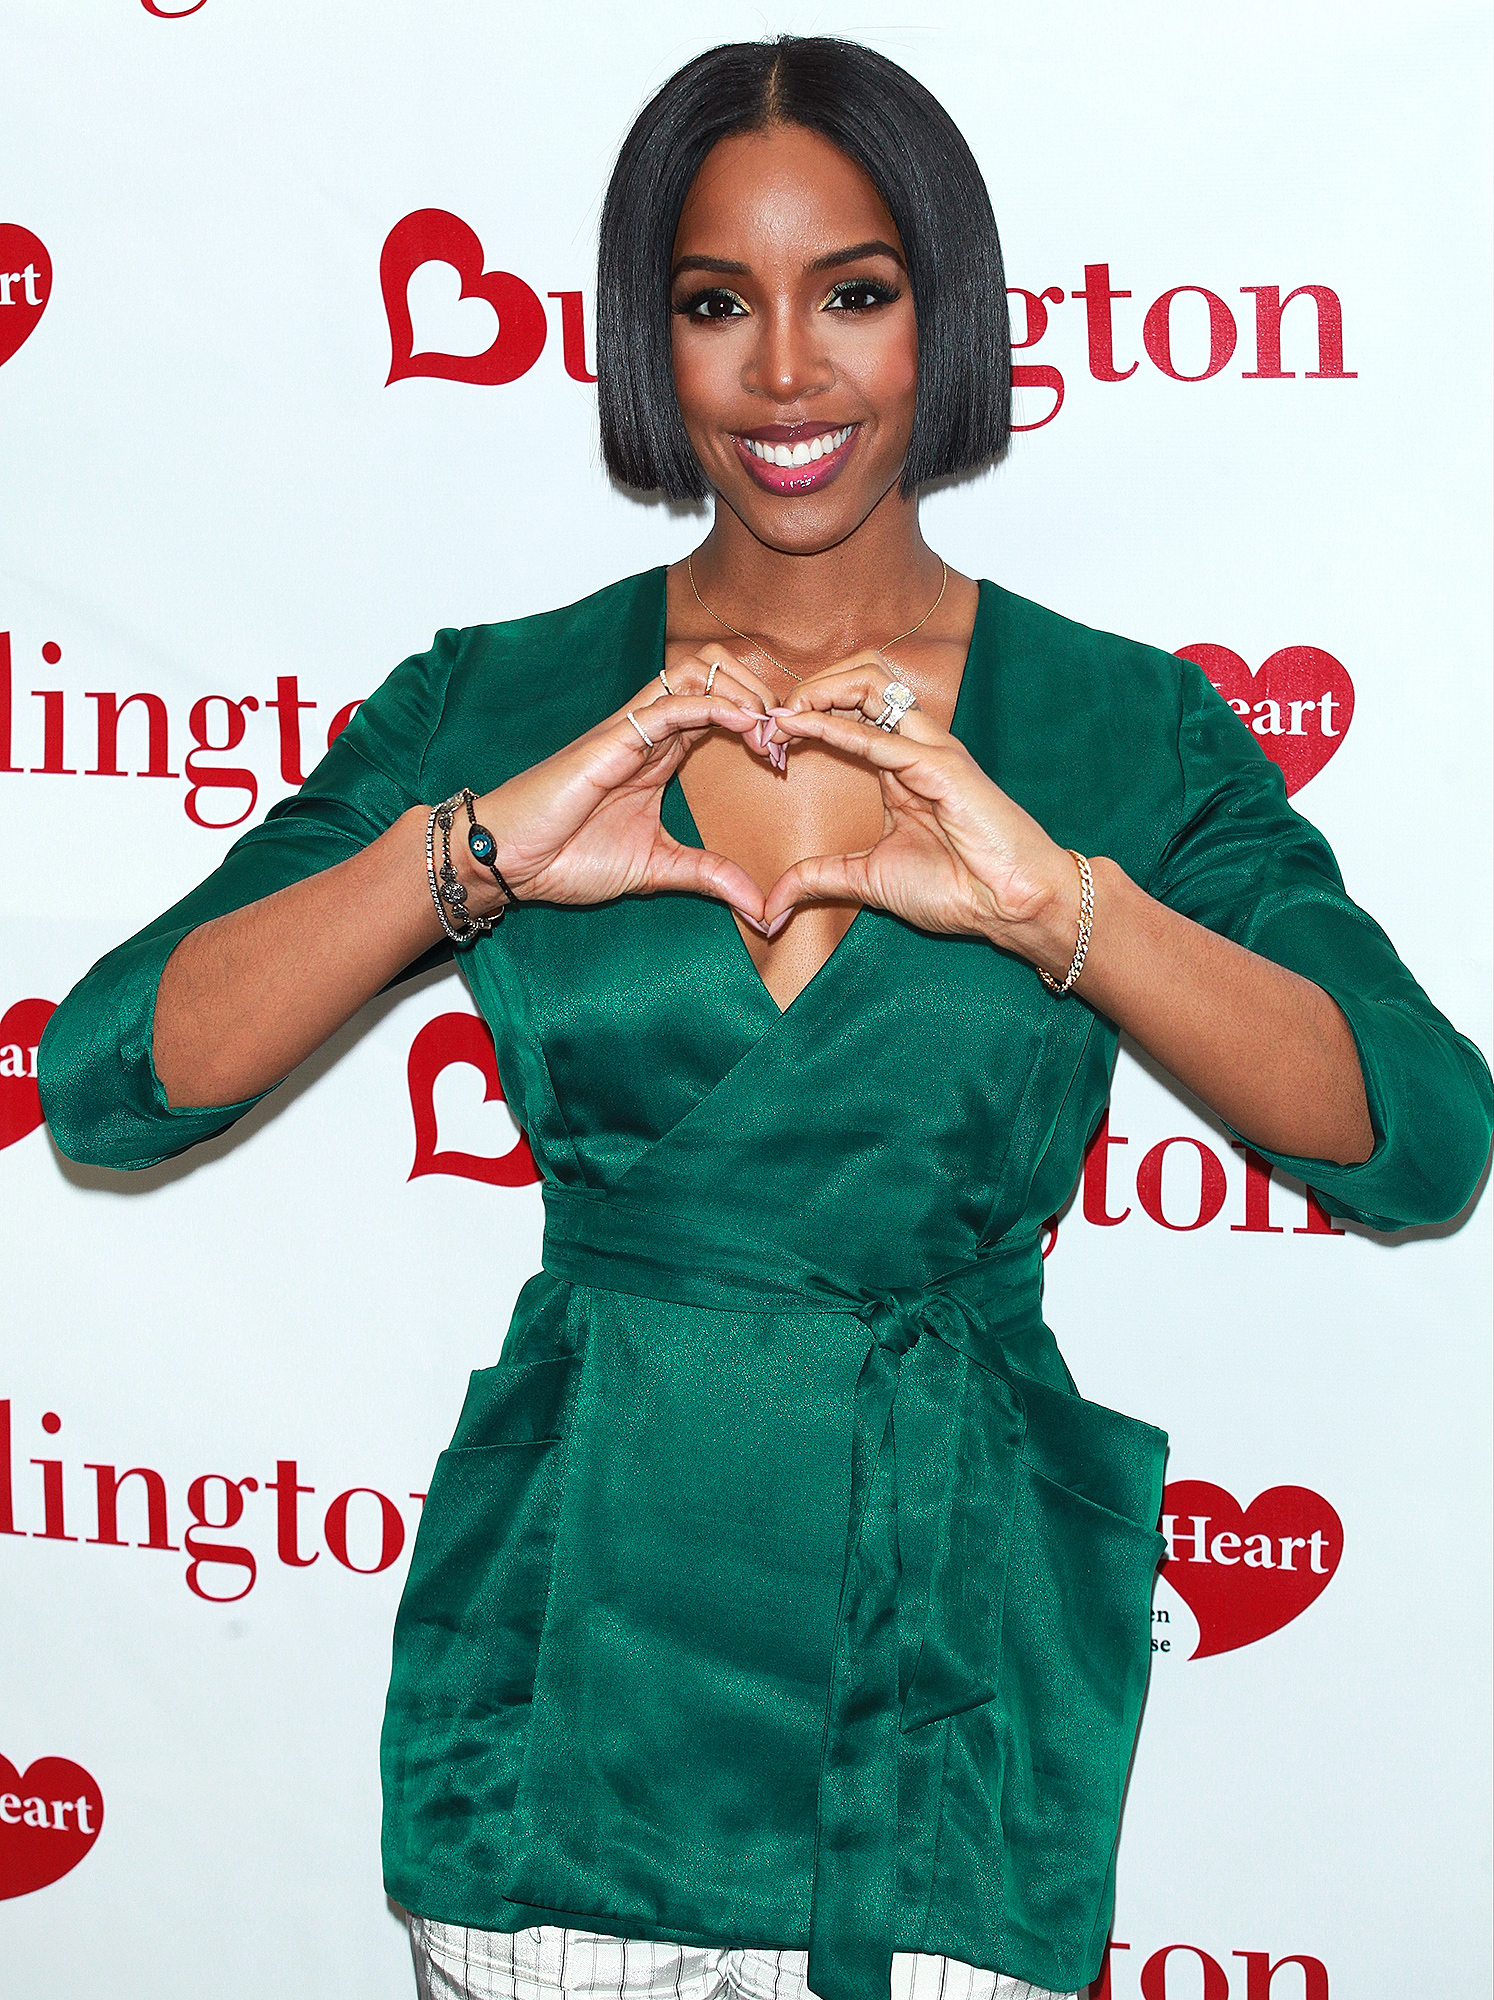 Mandatory Credit: Photo by MediaPunch/REX/Shutterstock (8174592d) Kelly Rowland '#KnockOutHeartDisease', event, New York, USA - 31 Jan 2017